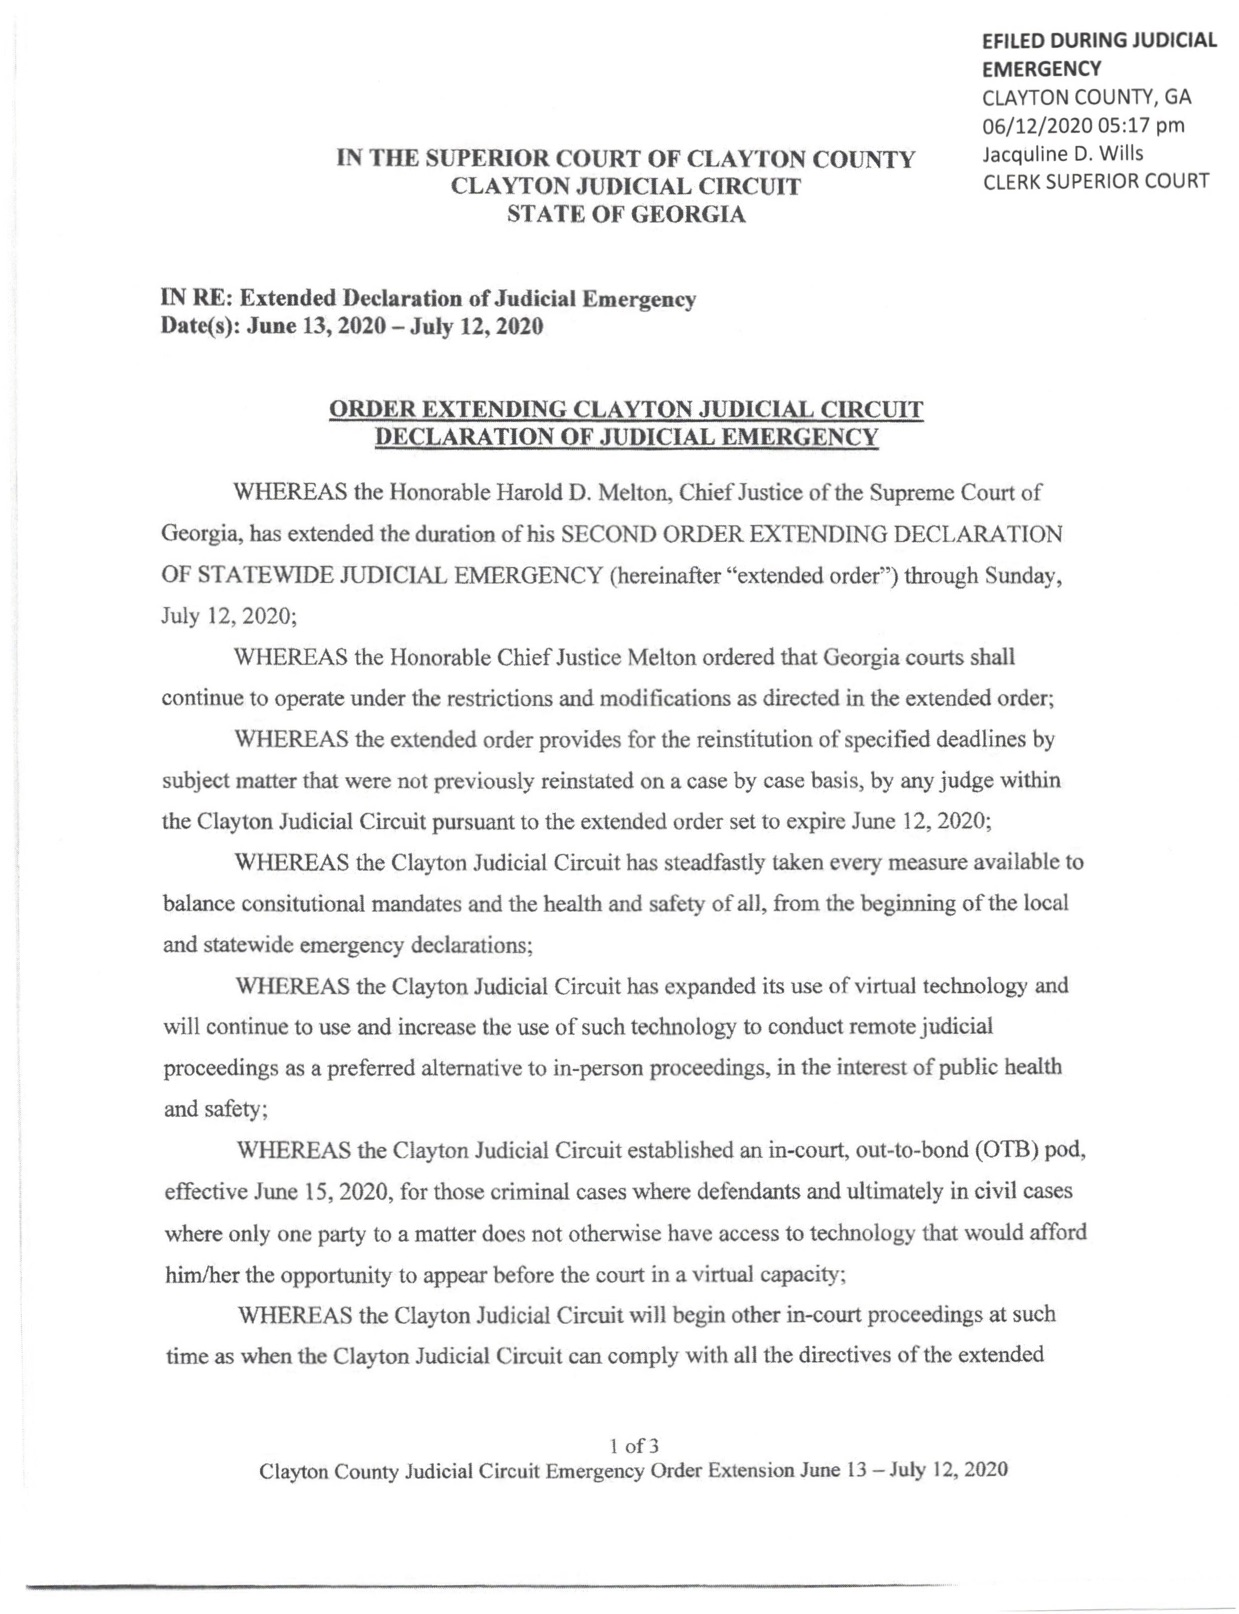 Order Extending Clayton County Judicial Circuit Declaration of Judicial Emergency